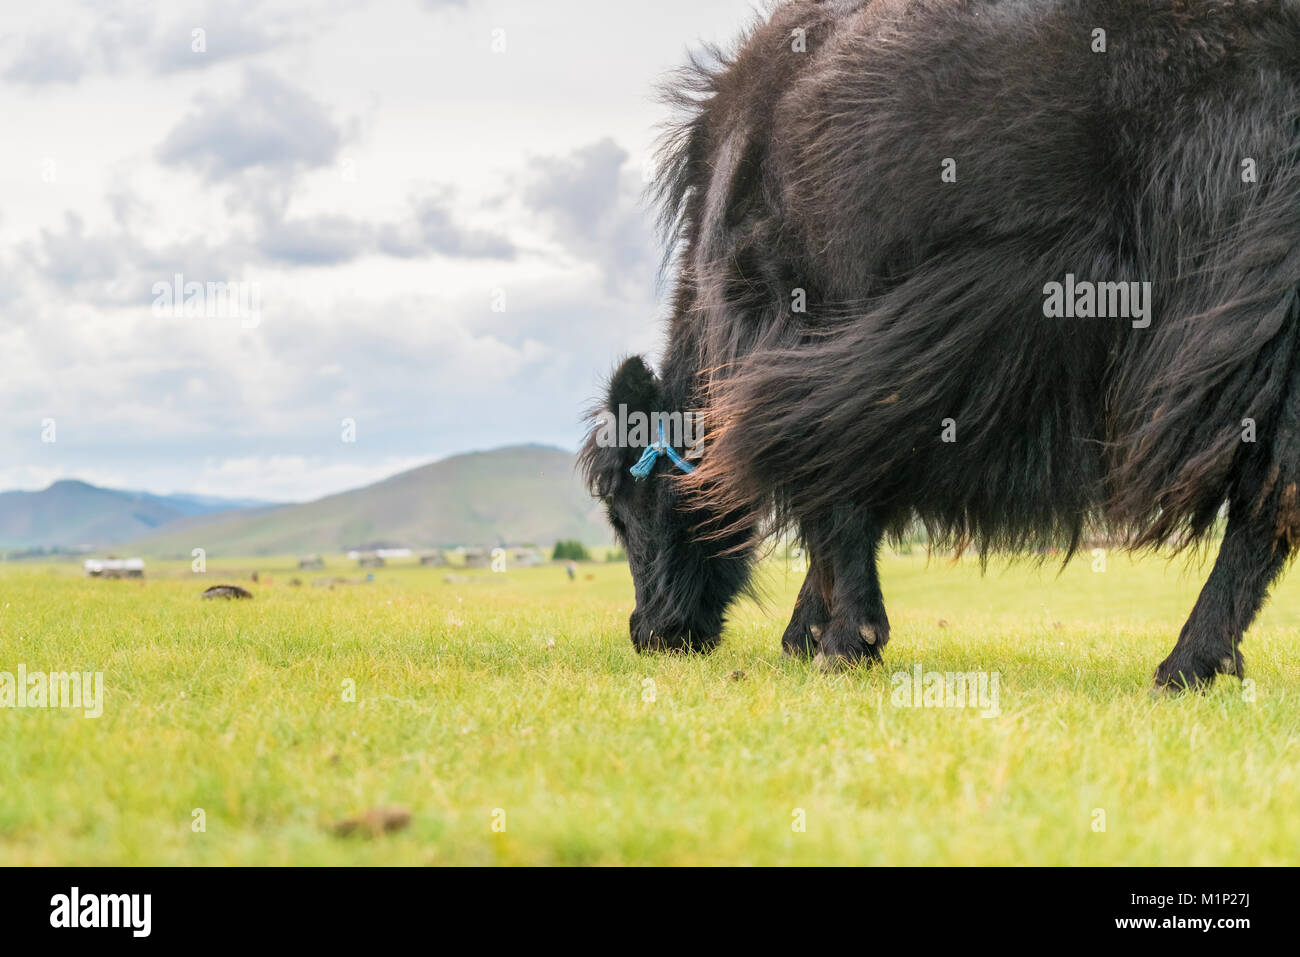 Yak grazing, Orkhon valley, South Hangay province, Mongolia, Central Asia, Asia - Stock Image